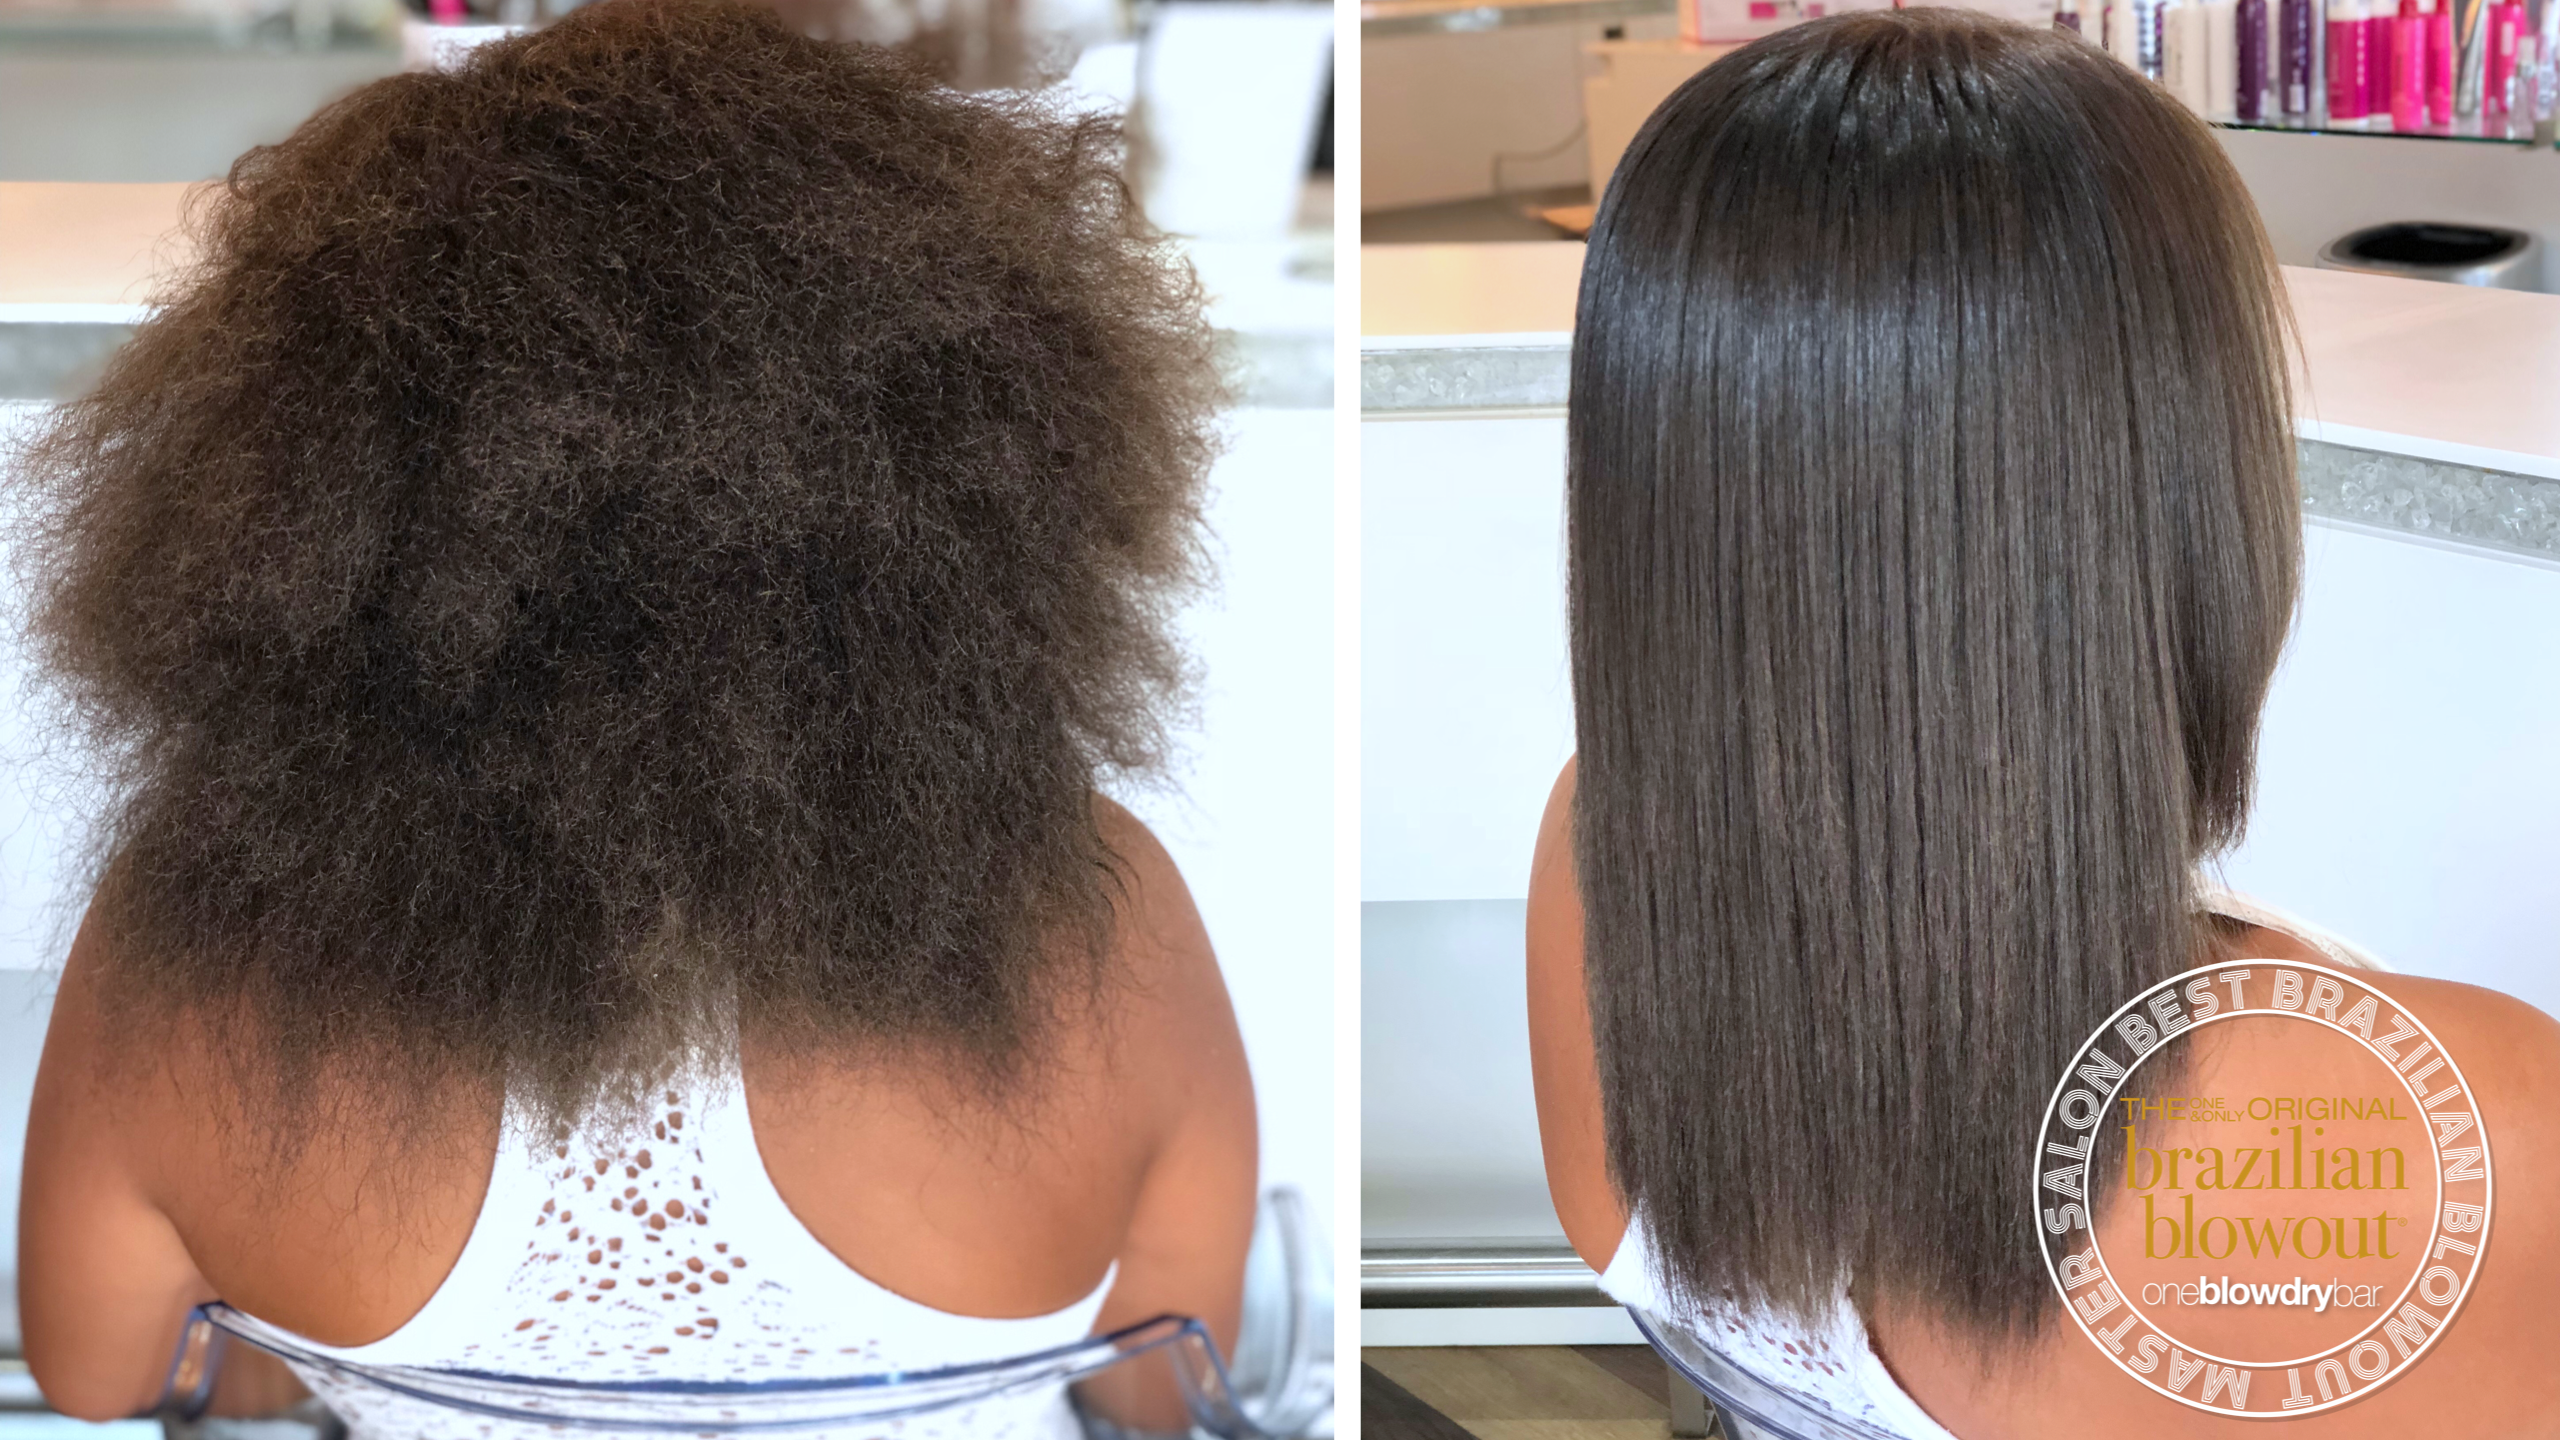 Brazilian Blowout Smoothing Hair Treatment